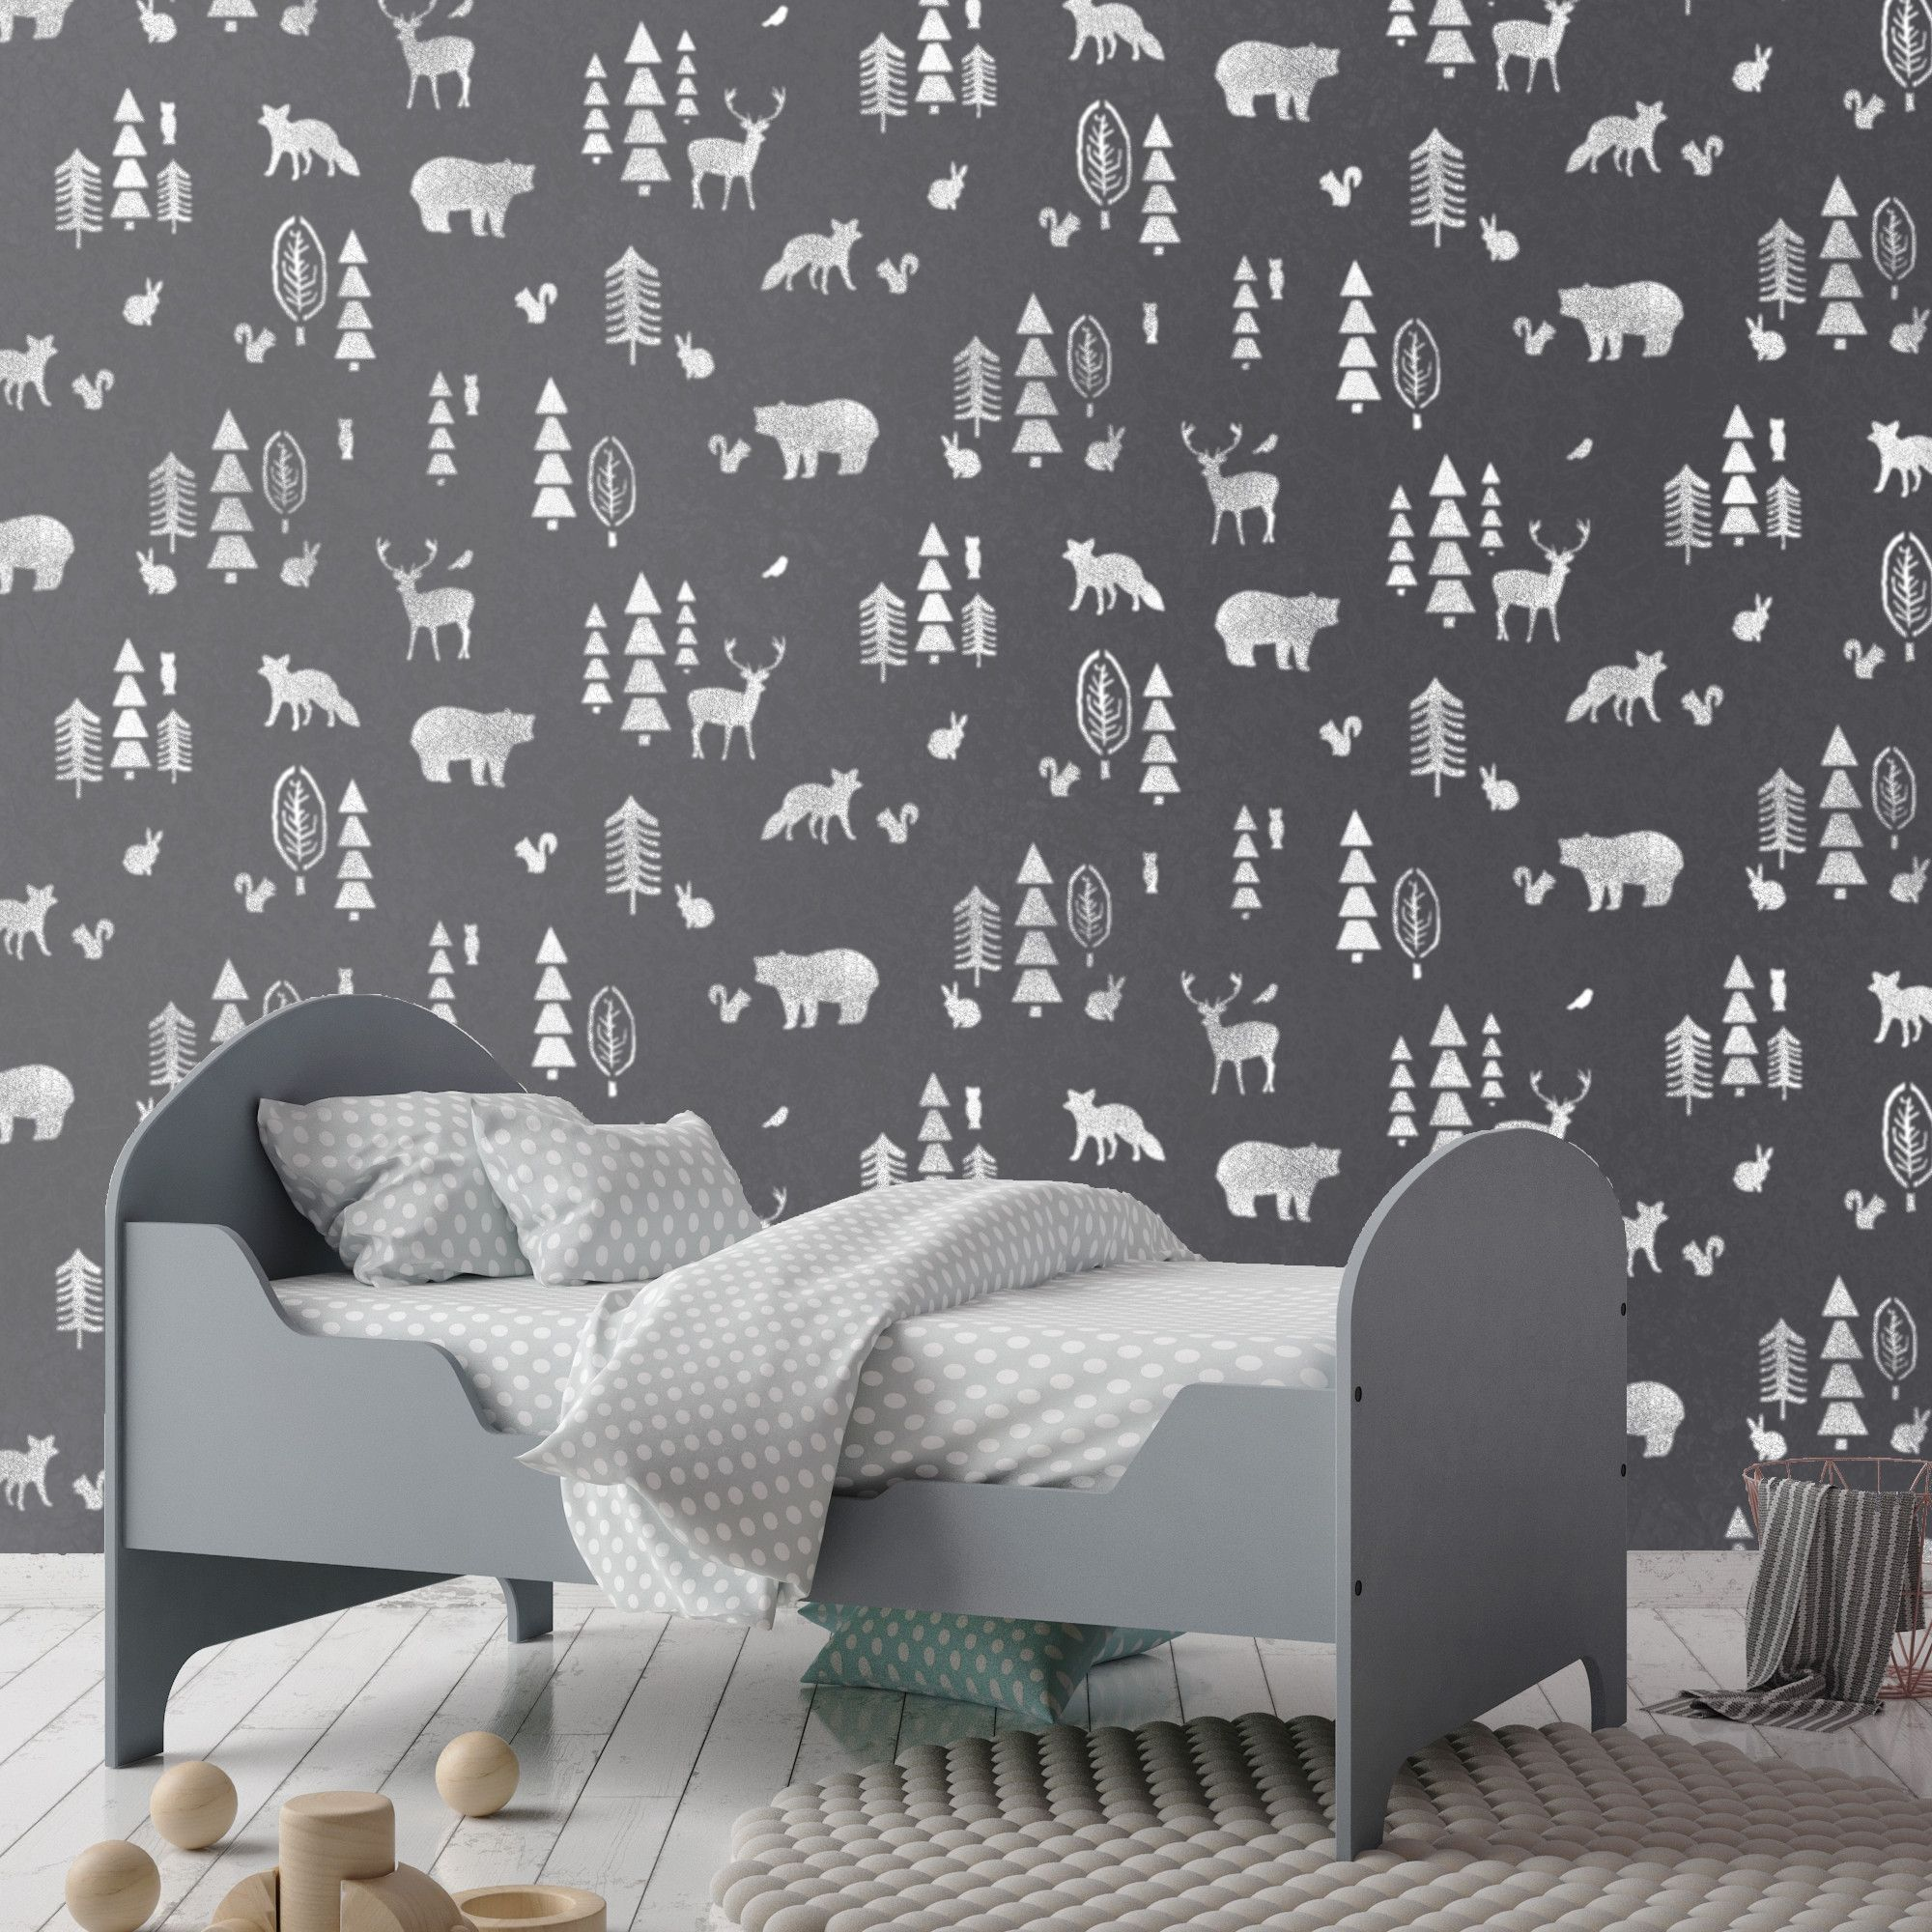 Nordic Forest Stencil Home Decor